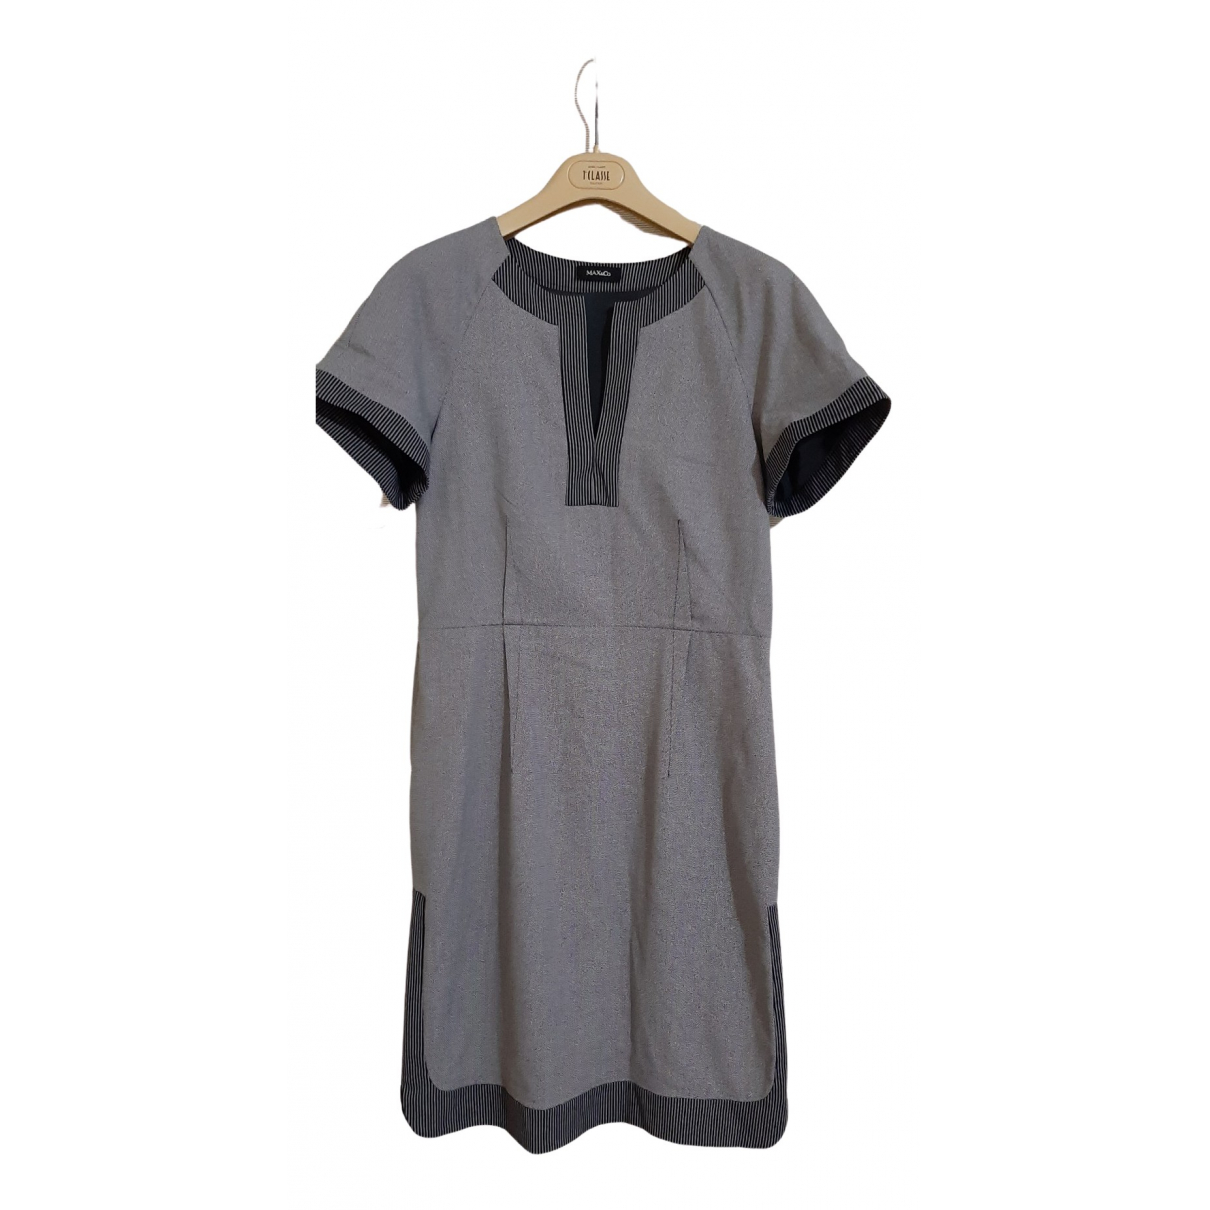 Max & Co N Grey dress for Women 46 IT